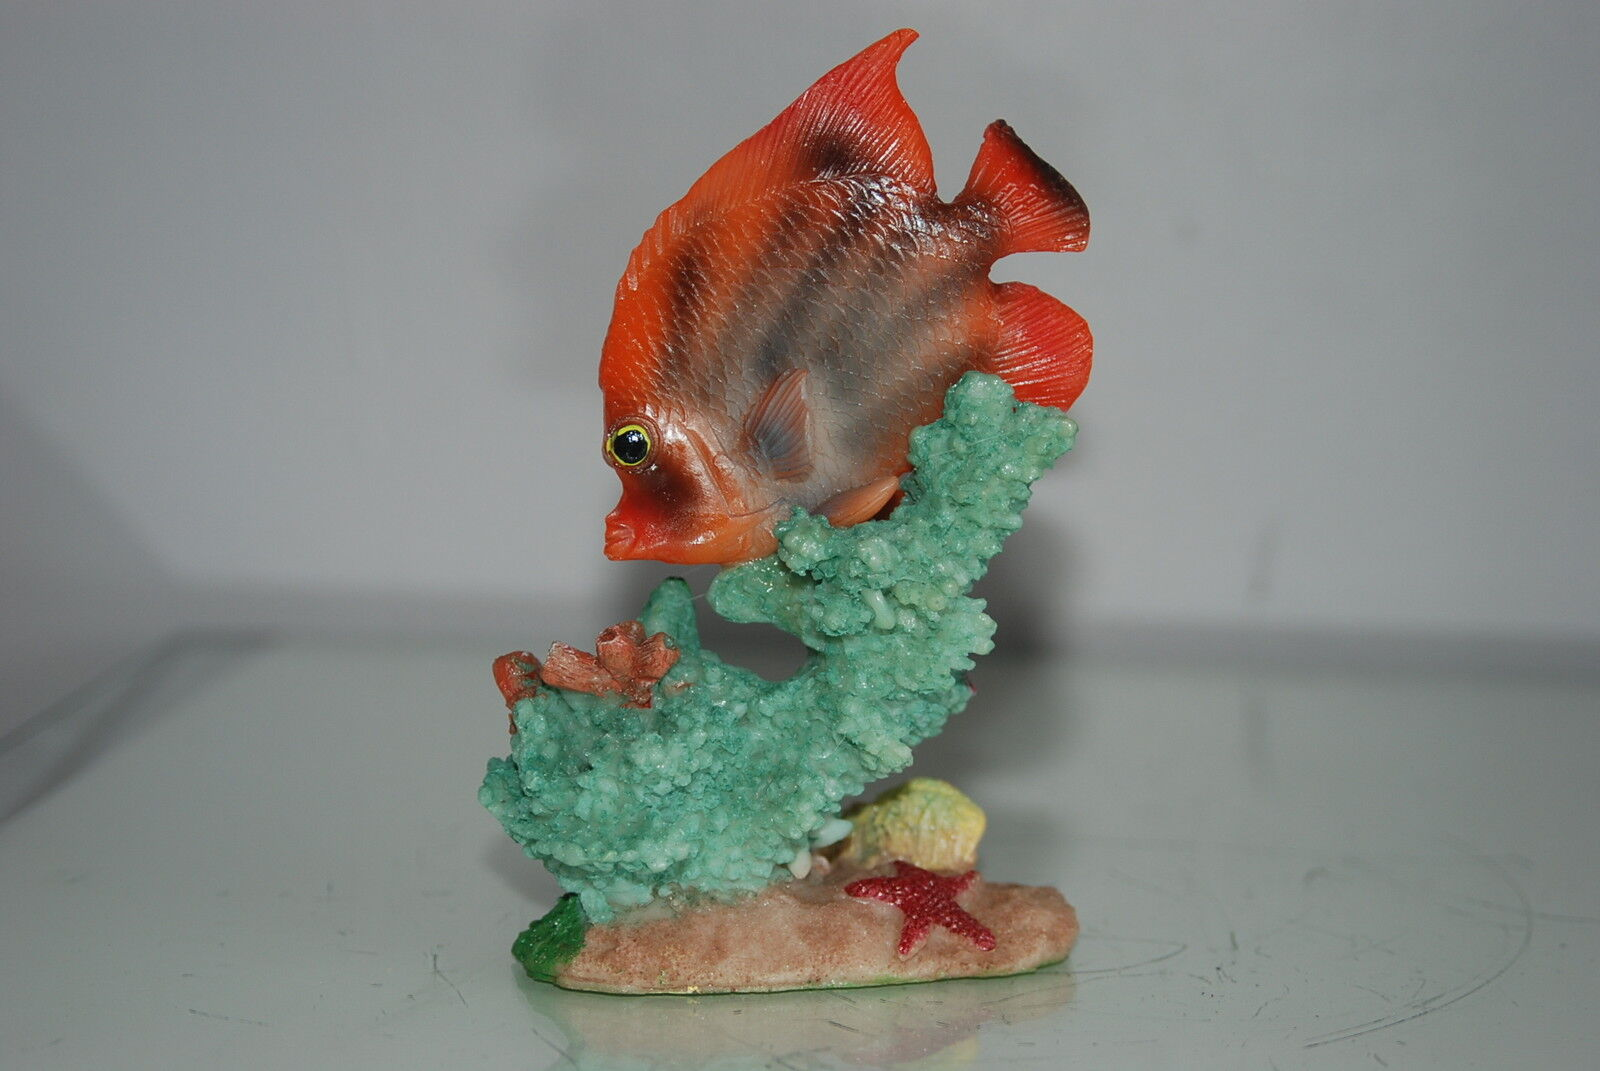 Aquarium Detailed Fish With Coral Base 10 x 5 x 13.5 cms For All Aquariums